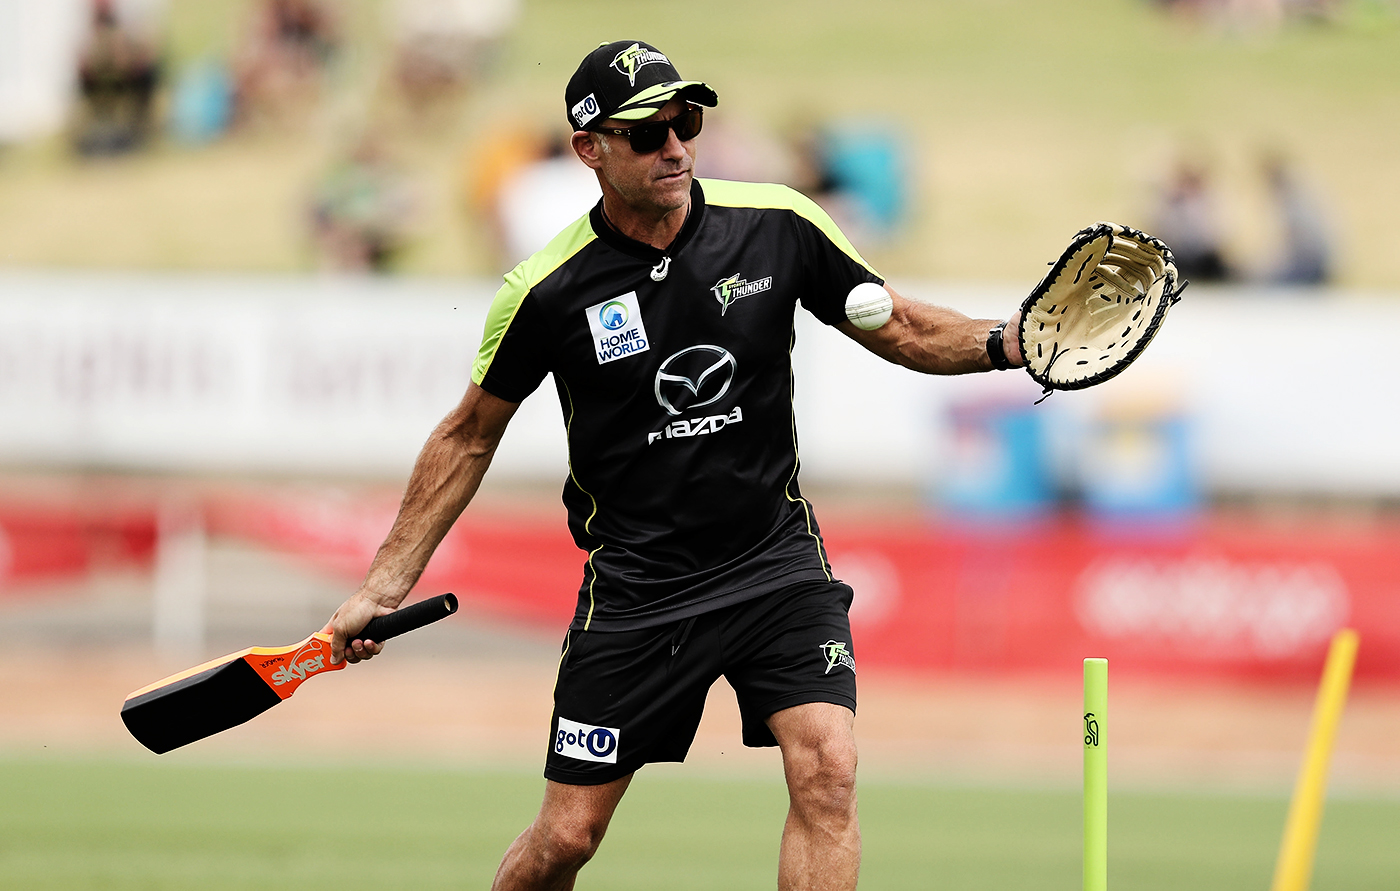 T20 coach Paddy Upton expects specialist hitting coaches to soon become the norm in T20